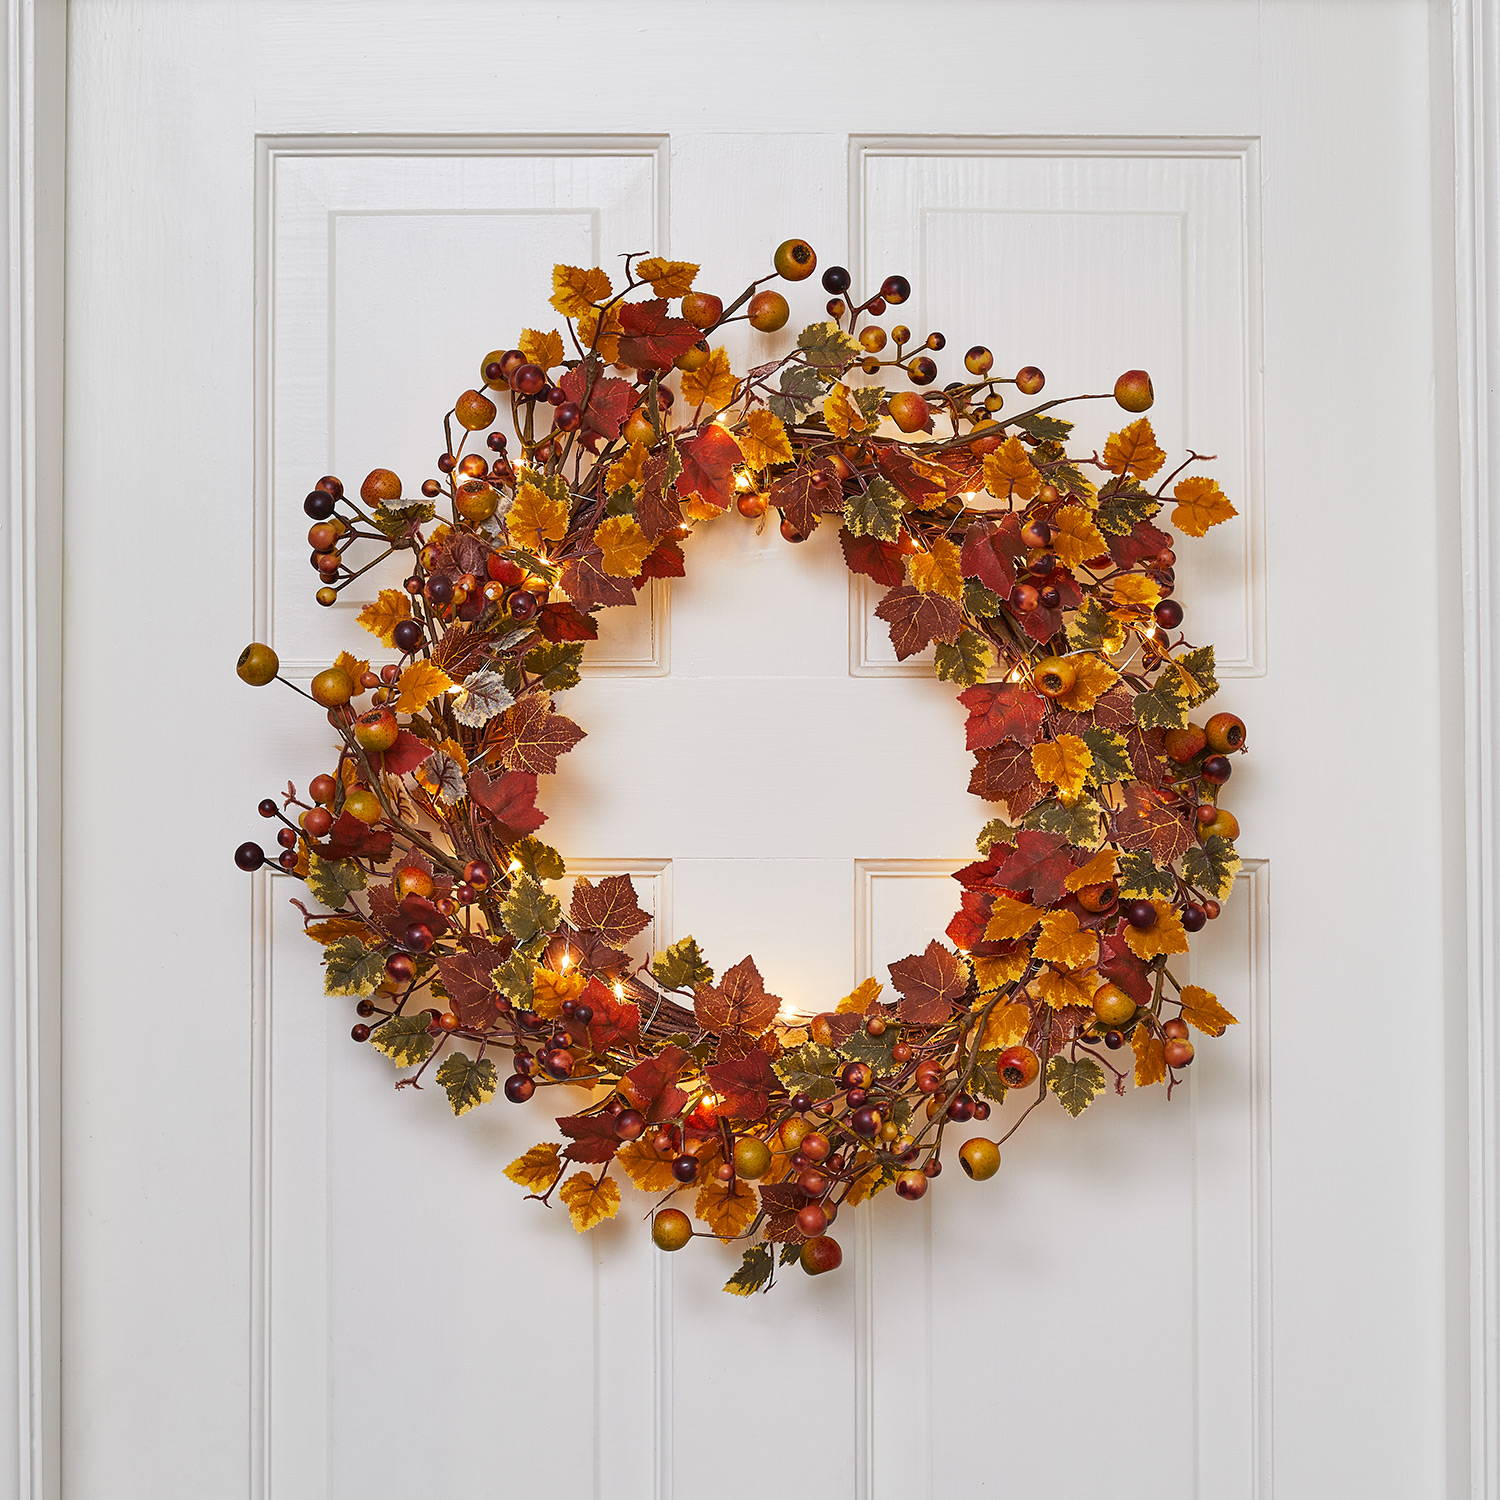 Internal door featuring a harvest autumn wreath entwined in micro lights